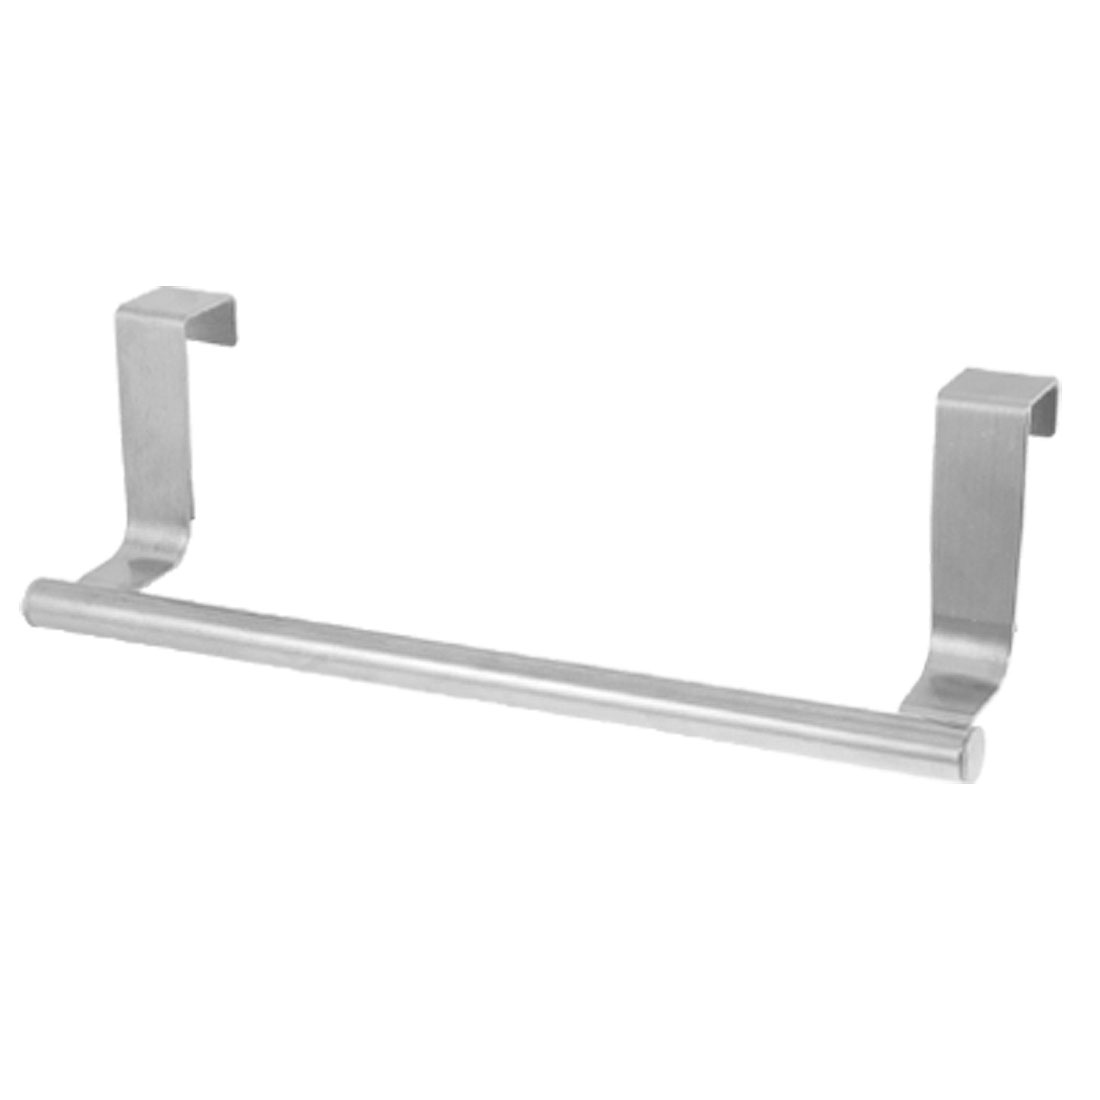 House Stainless Steel Door Hooks Coat Towel Cloth Hanger Holder